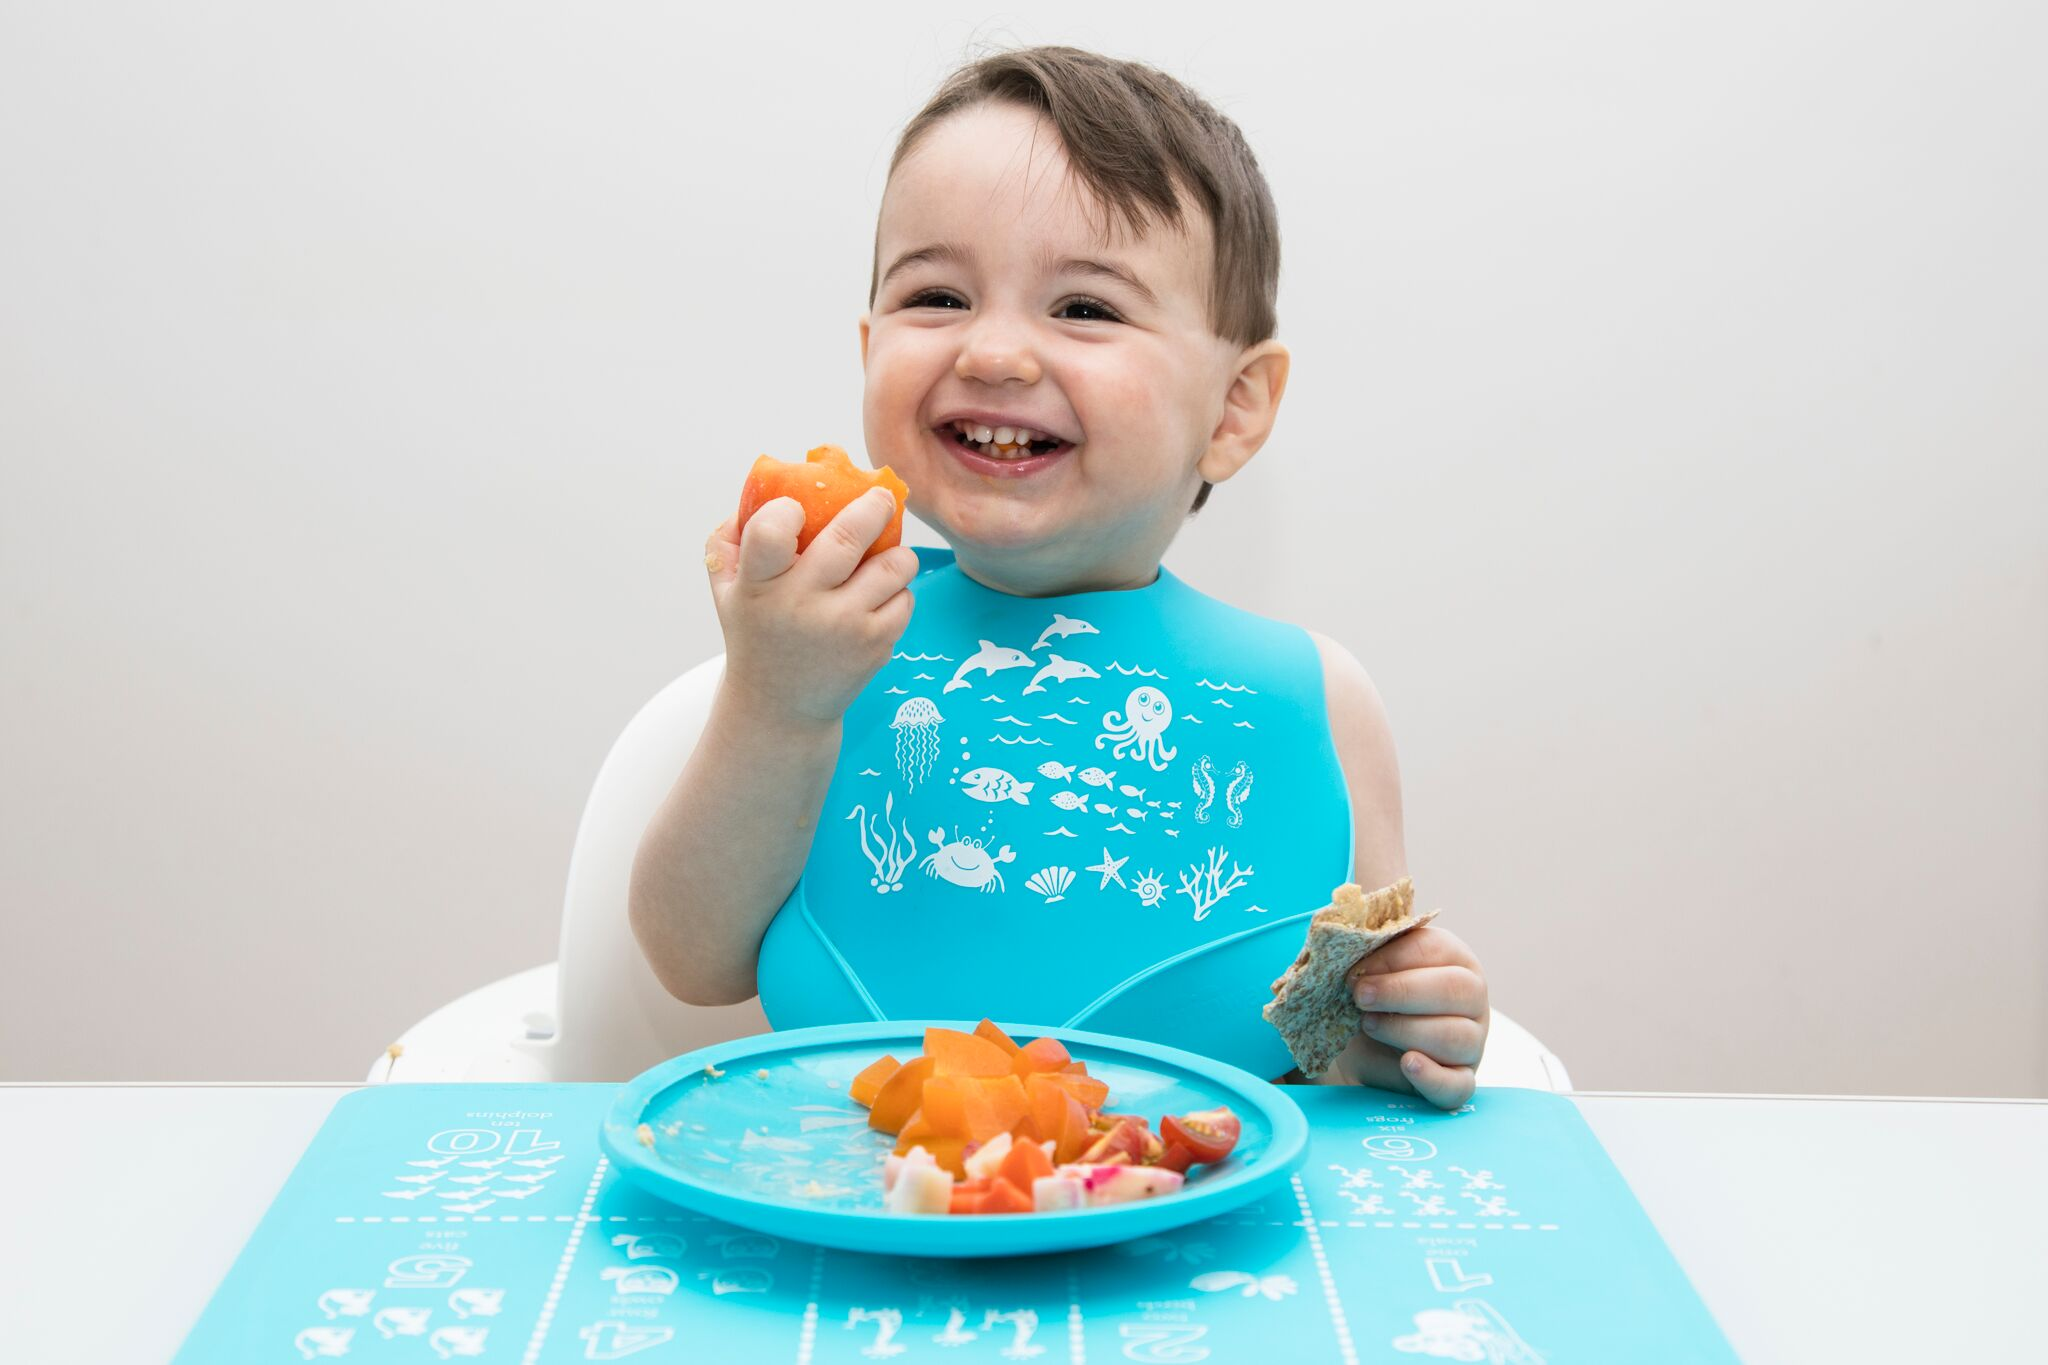 My son enjoying his lunch with  Brinware's bib, plate and mat .